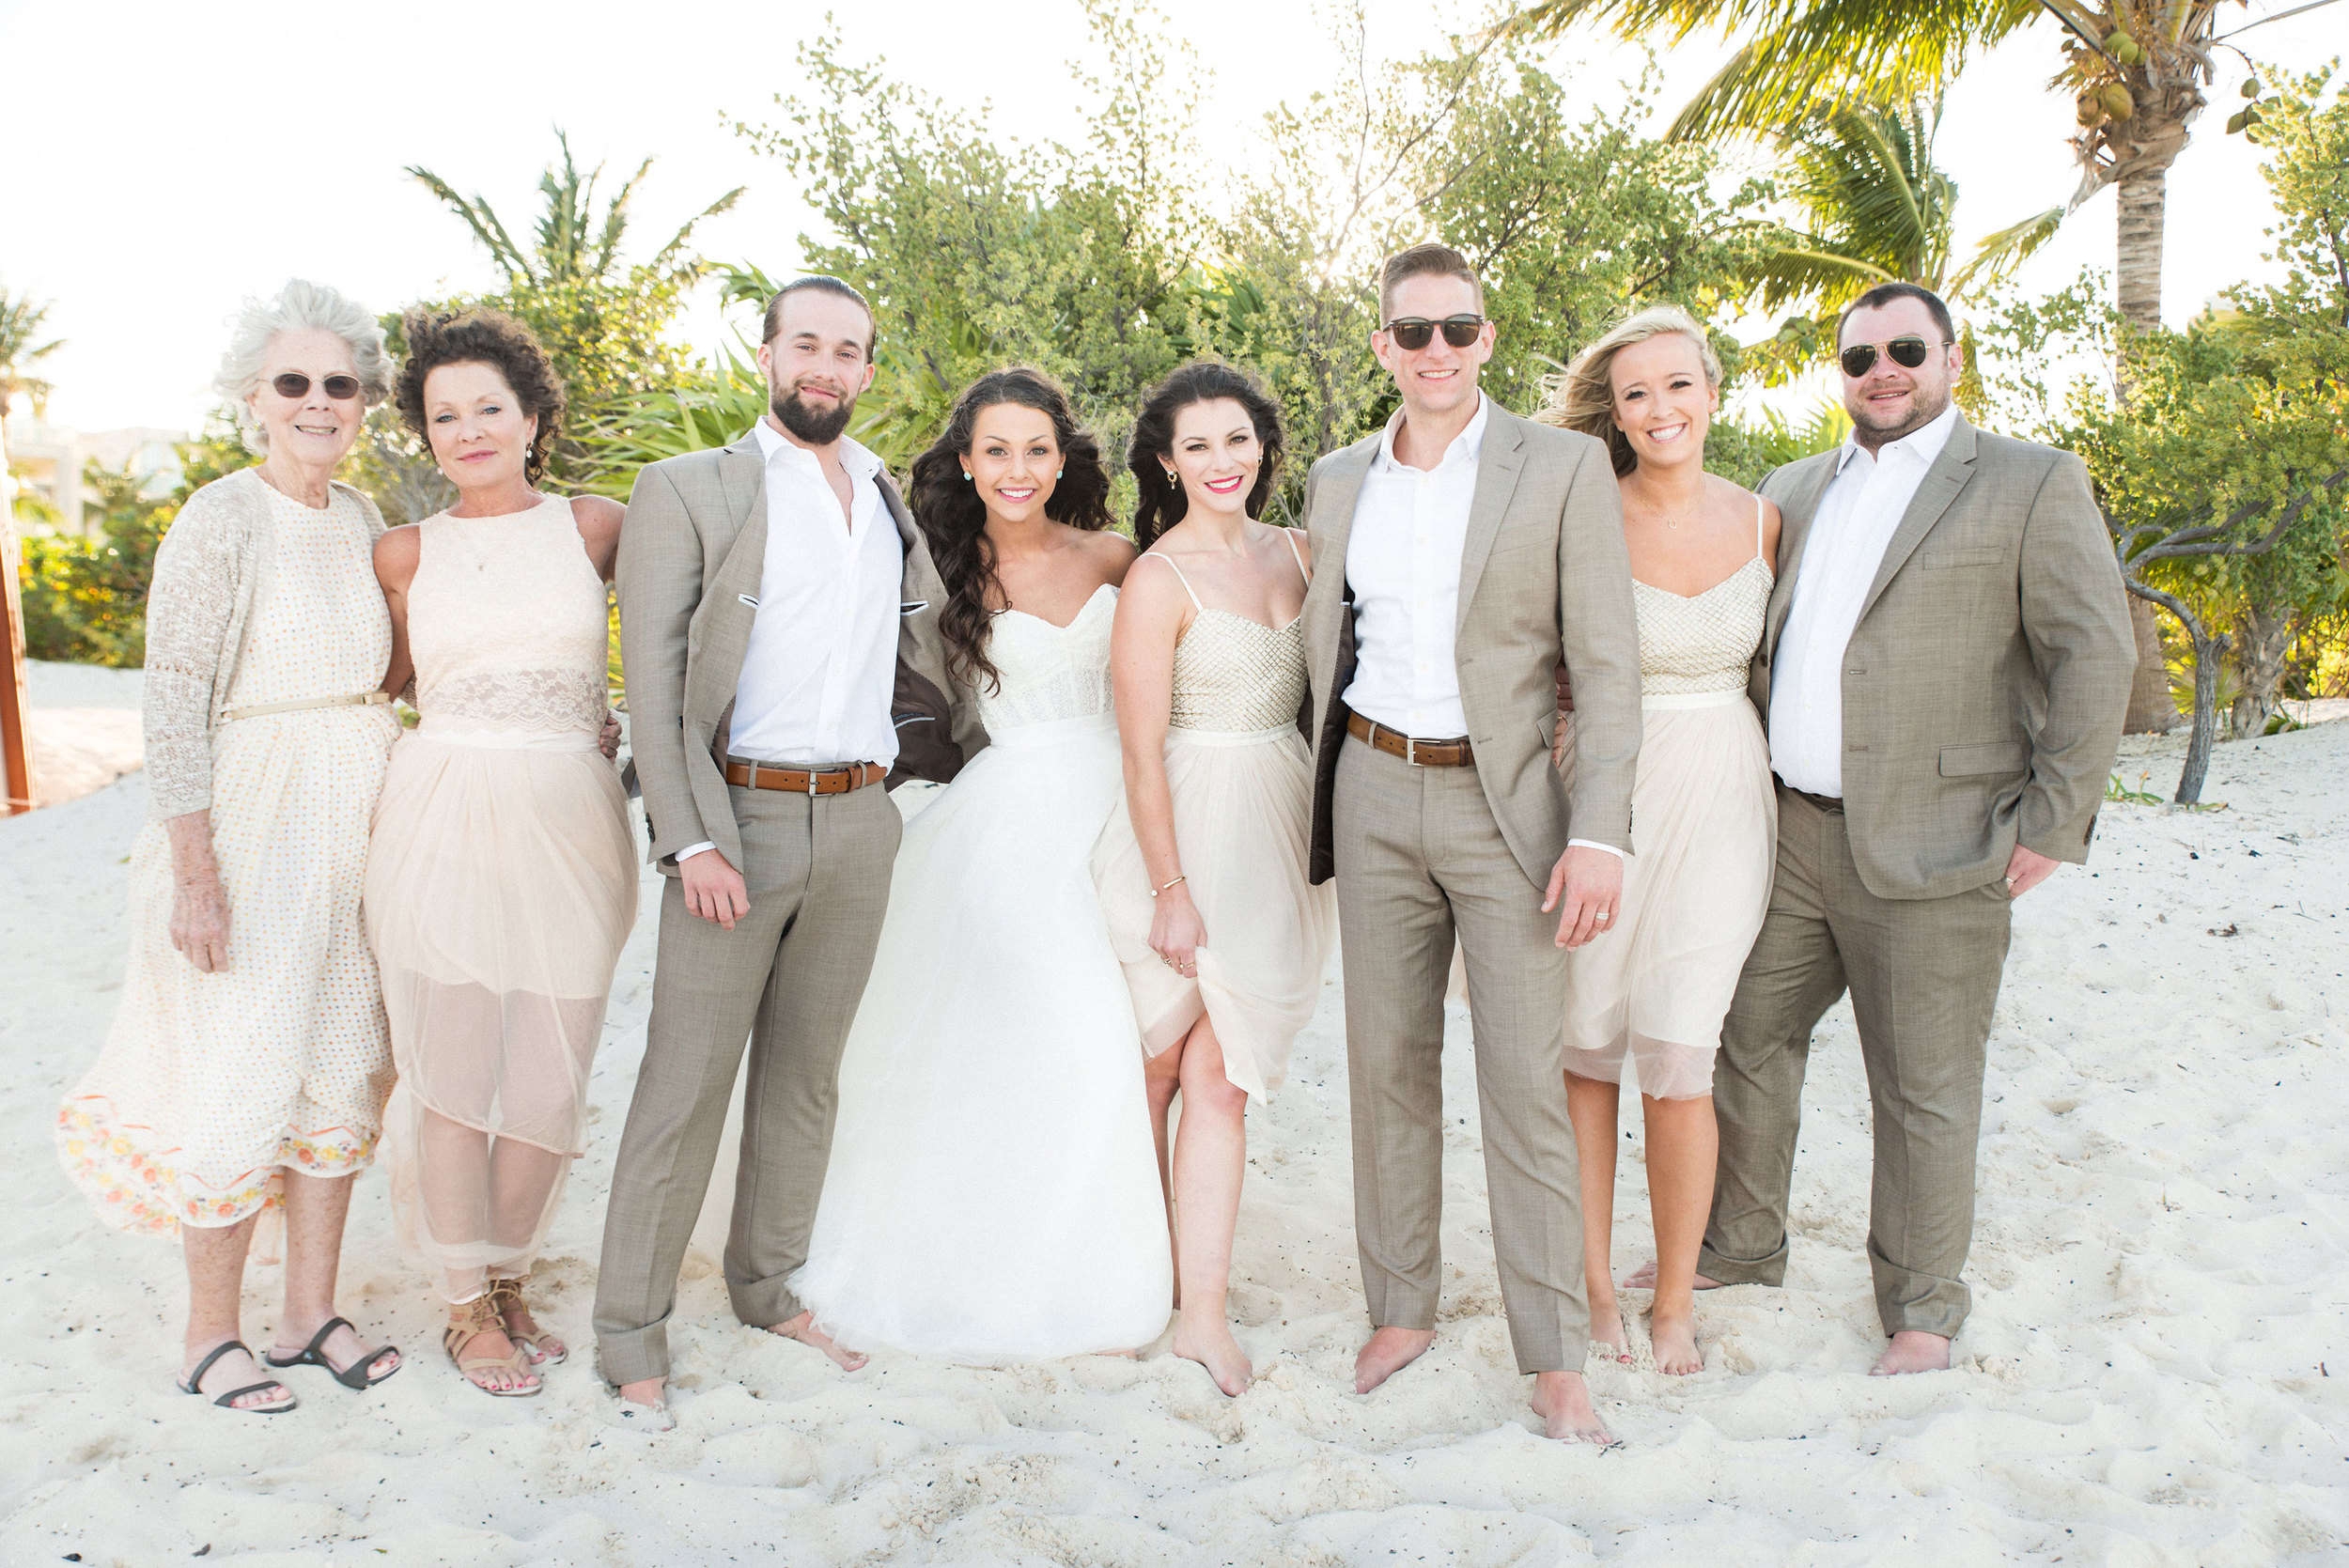 Destination wedding in Mexico  informal family portrait  BHLDN Coppelia bridesmaids  dress KARLY   COREY S WEDDING ON THE BEACH IN MEXICO   Me and Mr  Jones. Destination Wedding Bridesmaids Dresses. Home Design Ideas